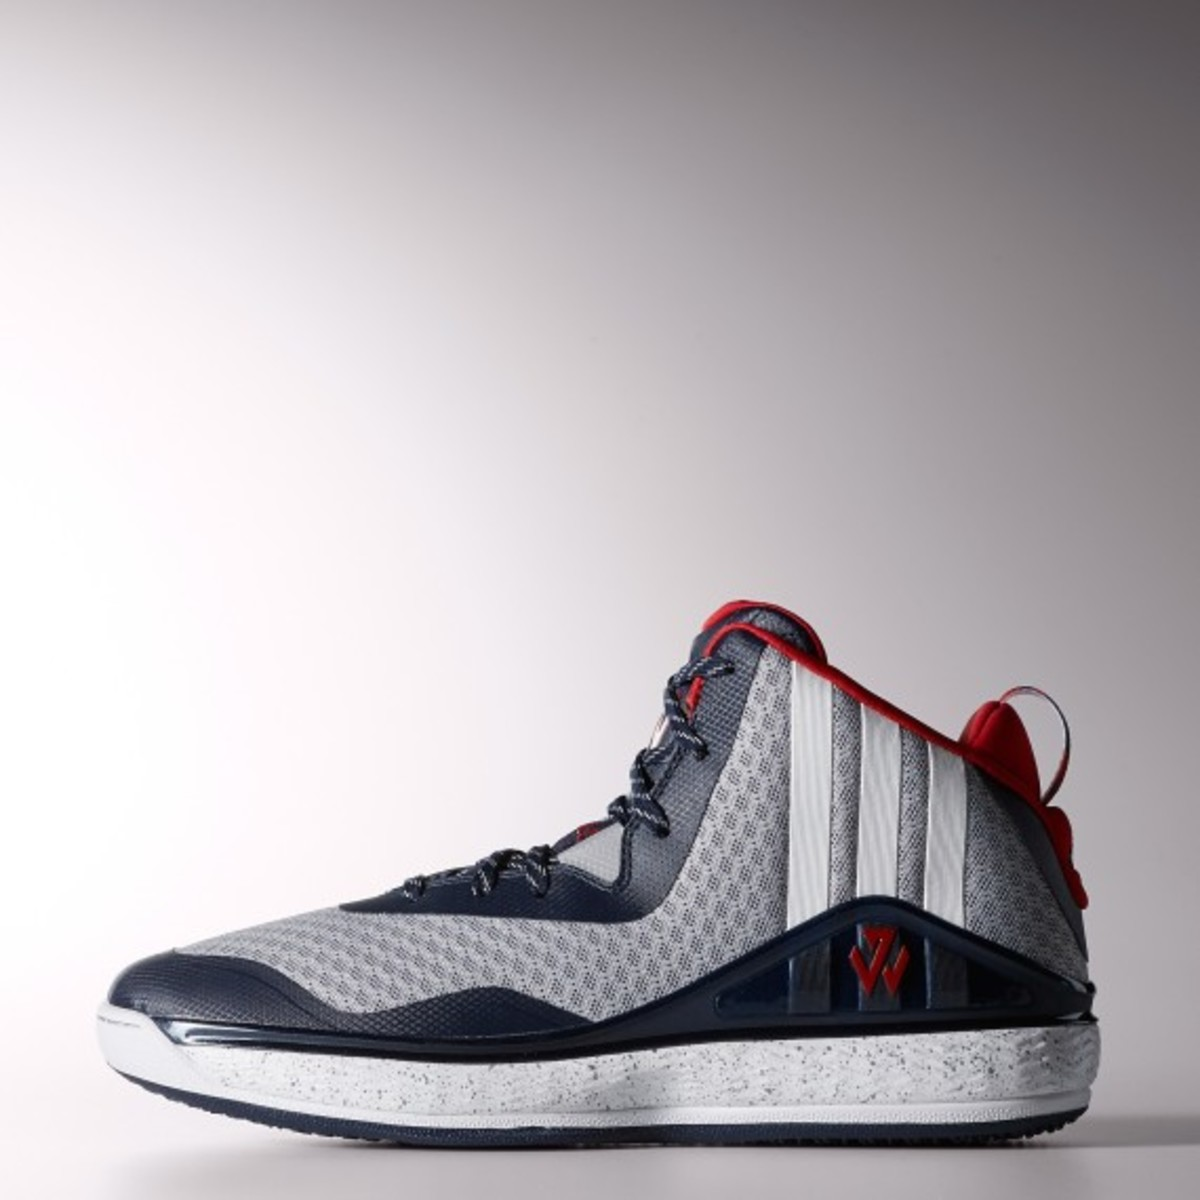 adidas-j-wall-1-signature-basketball-shoe-13